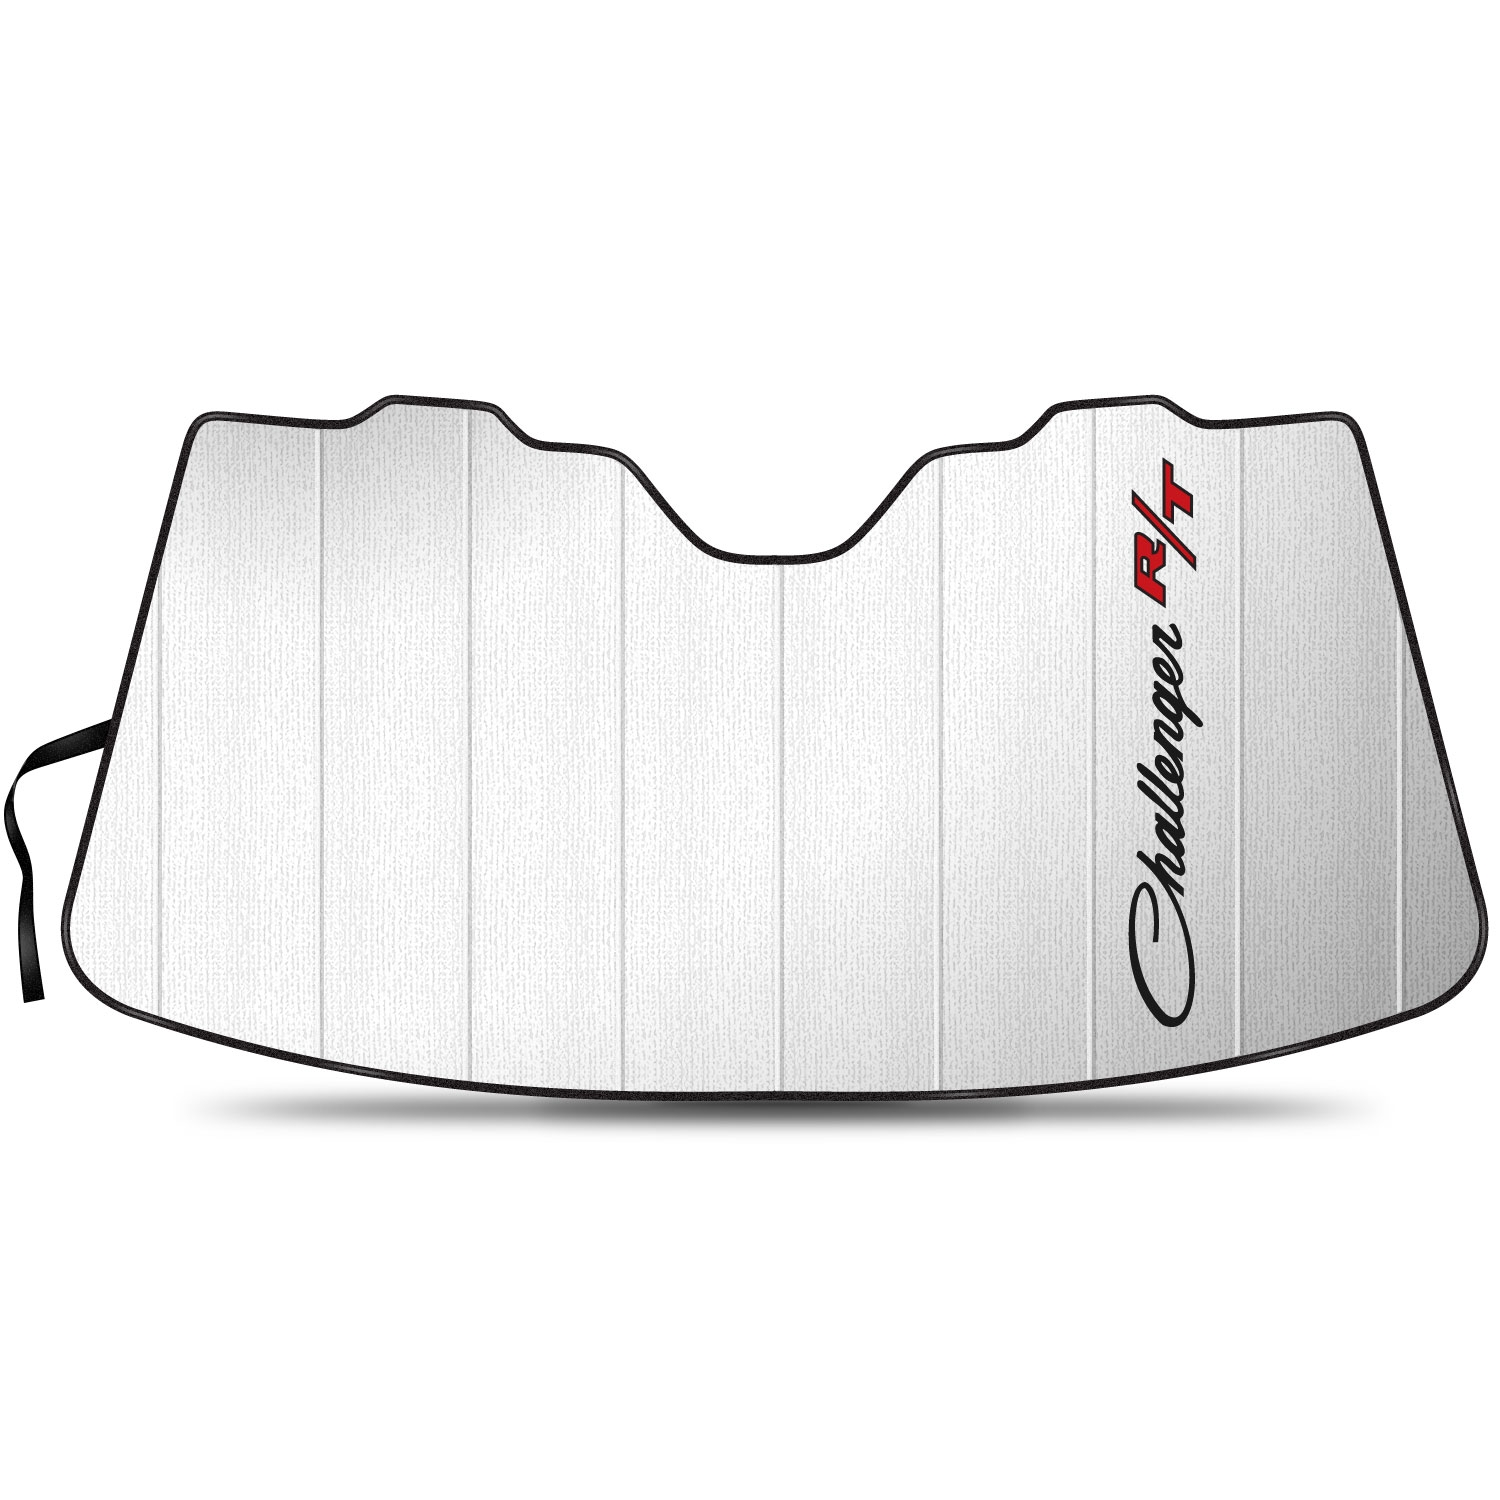 """Dodge Challenger R/T Classic Logo 55-1/2""""x 27"""" Stand Up Universal Fit Auto Windshield Sun Shade"""